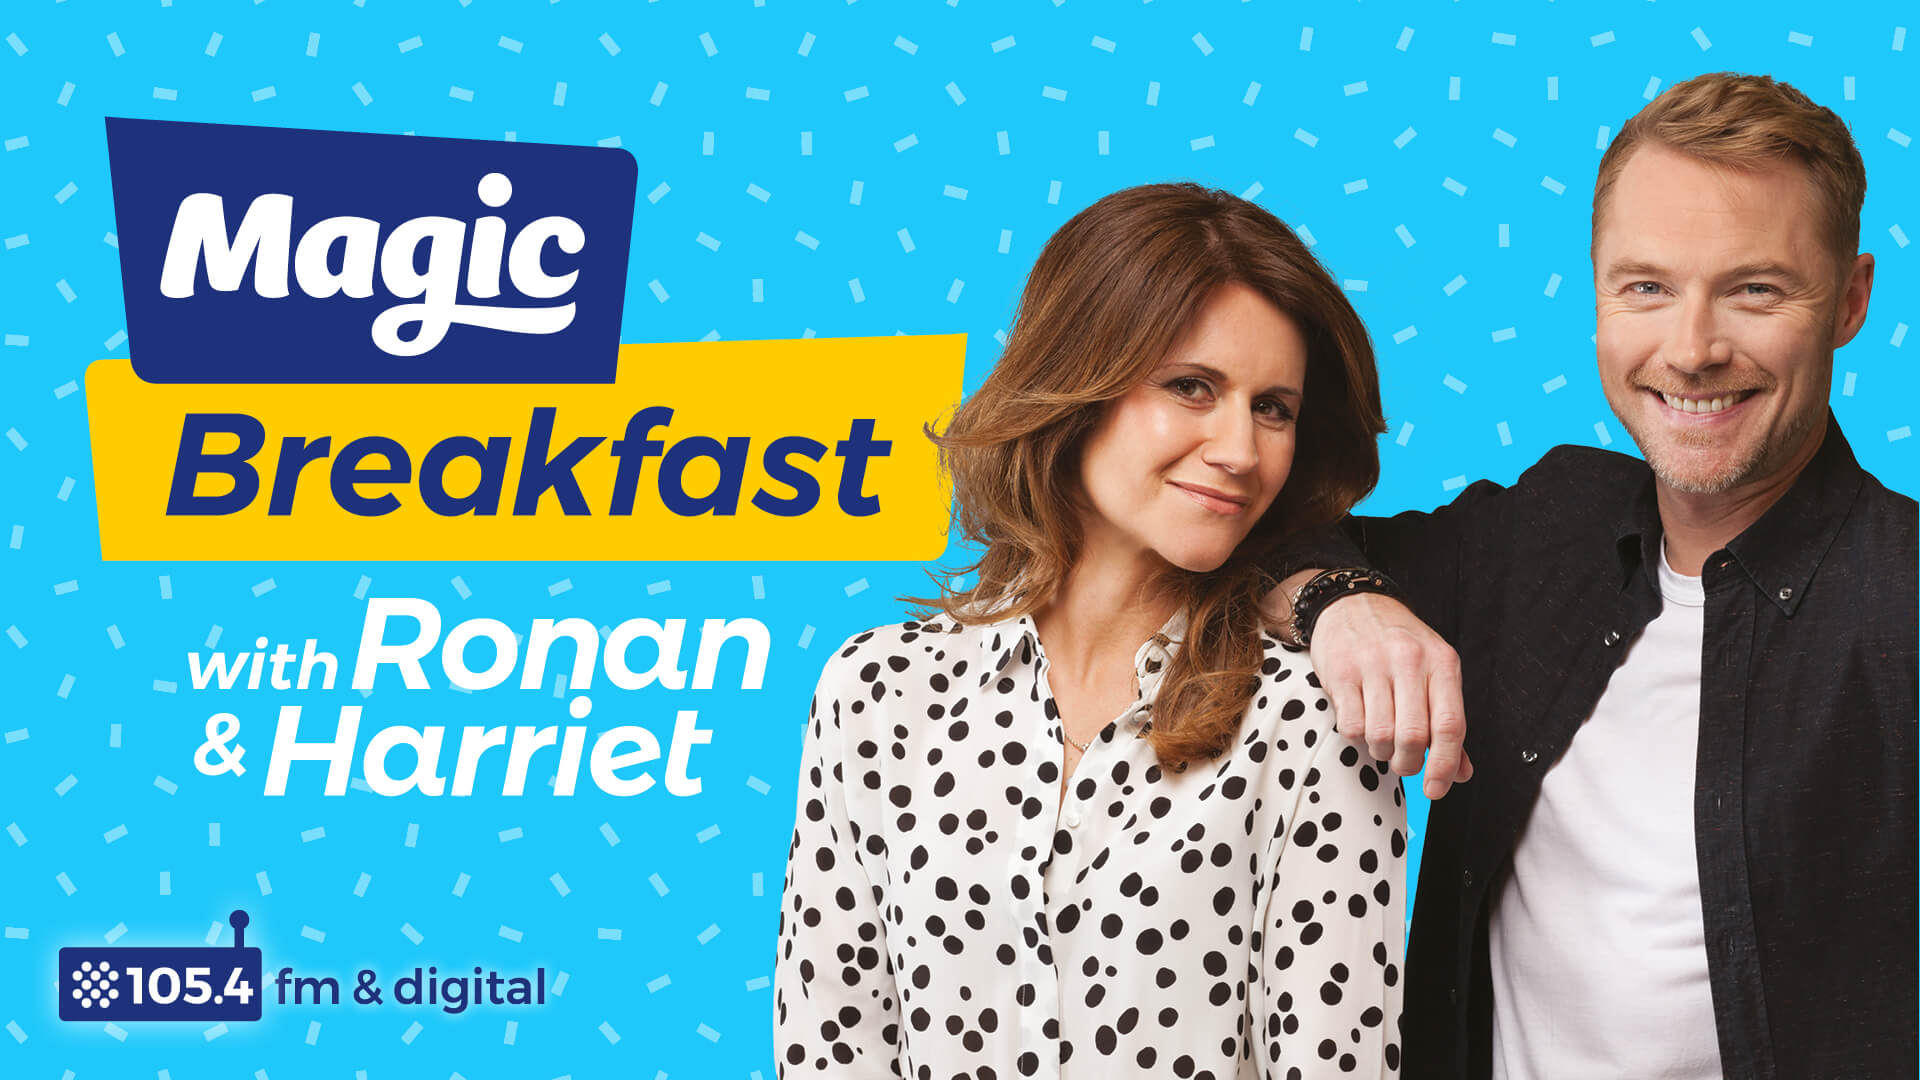 Magic radio breakfast show launch advertsing